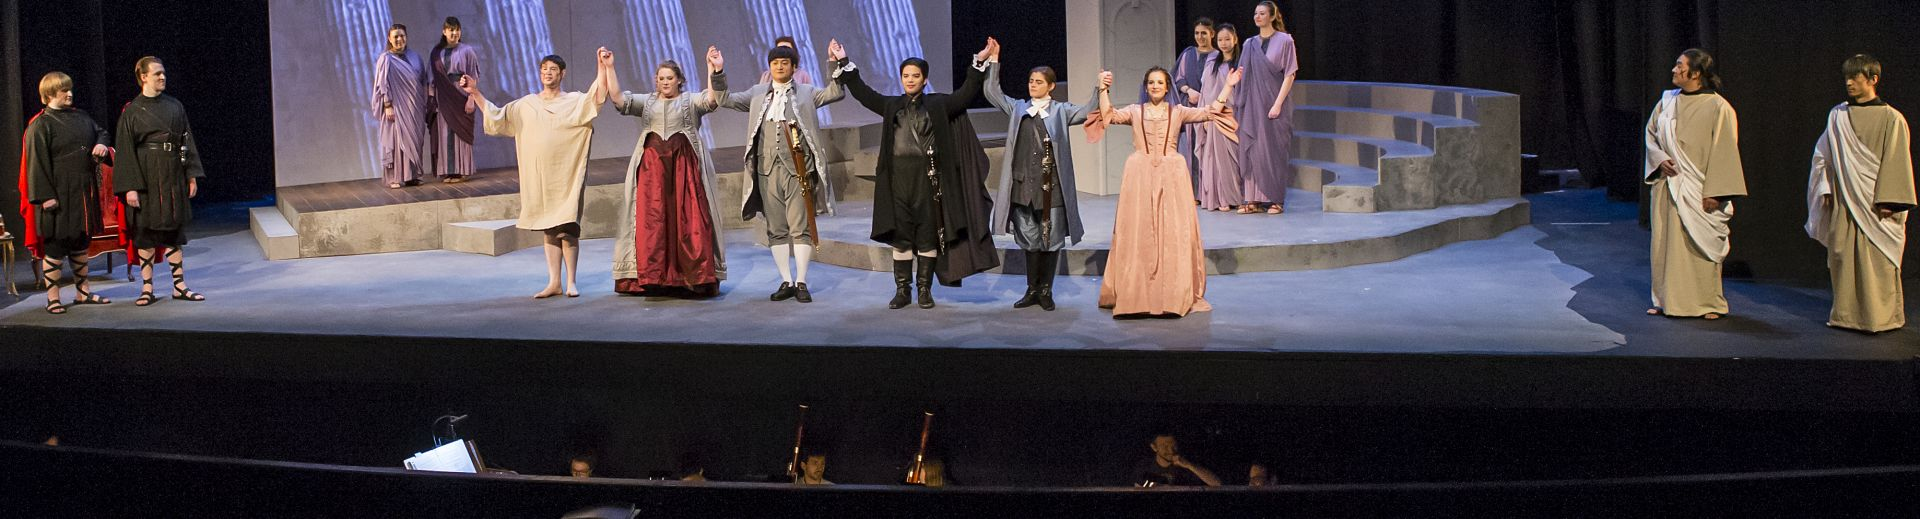 Opera production with players in costume taking a company bow